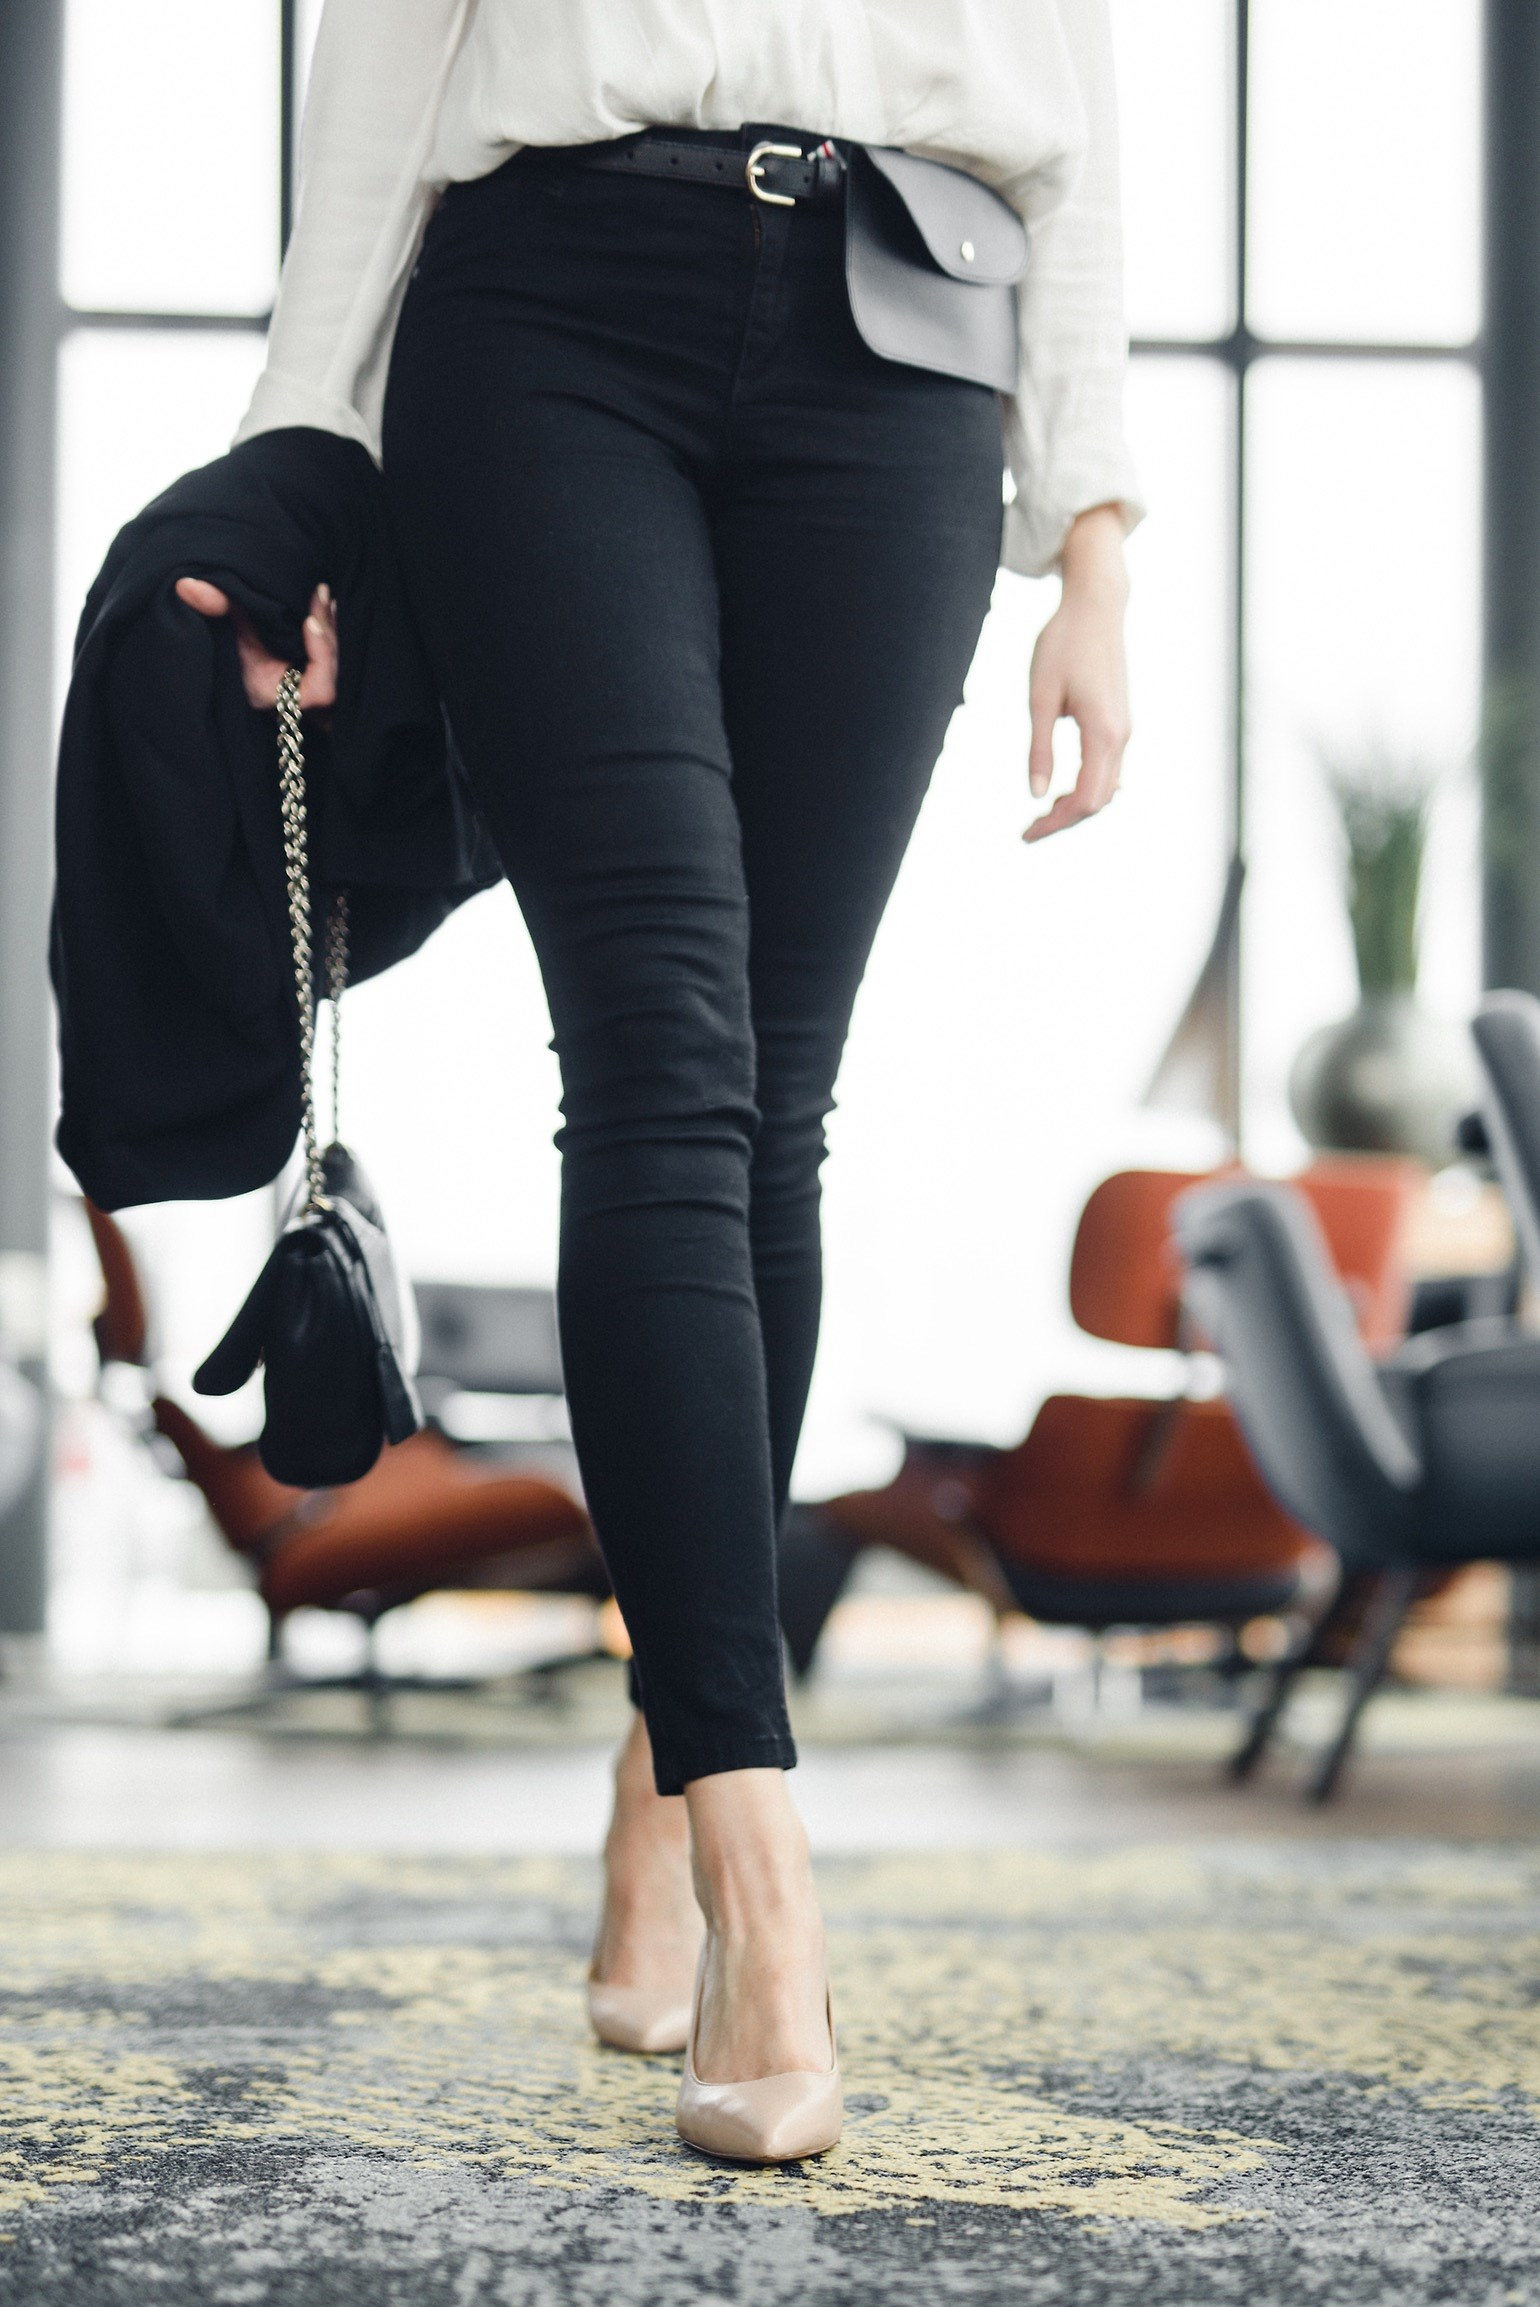 Are these really the most comfortable heels ever?